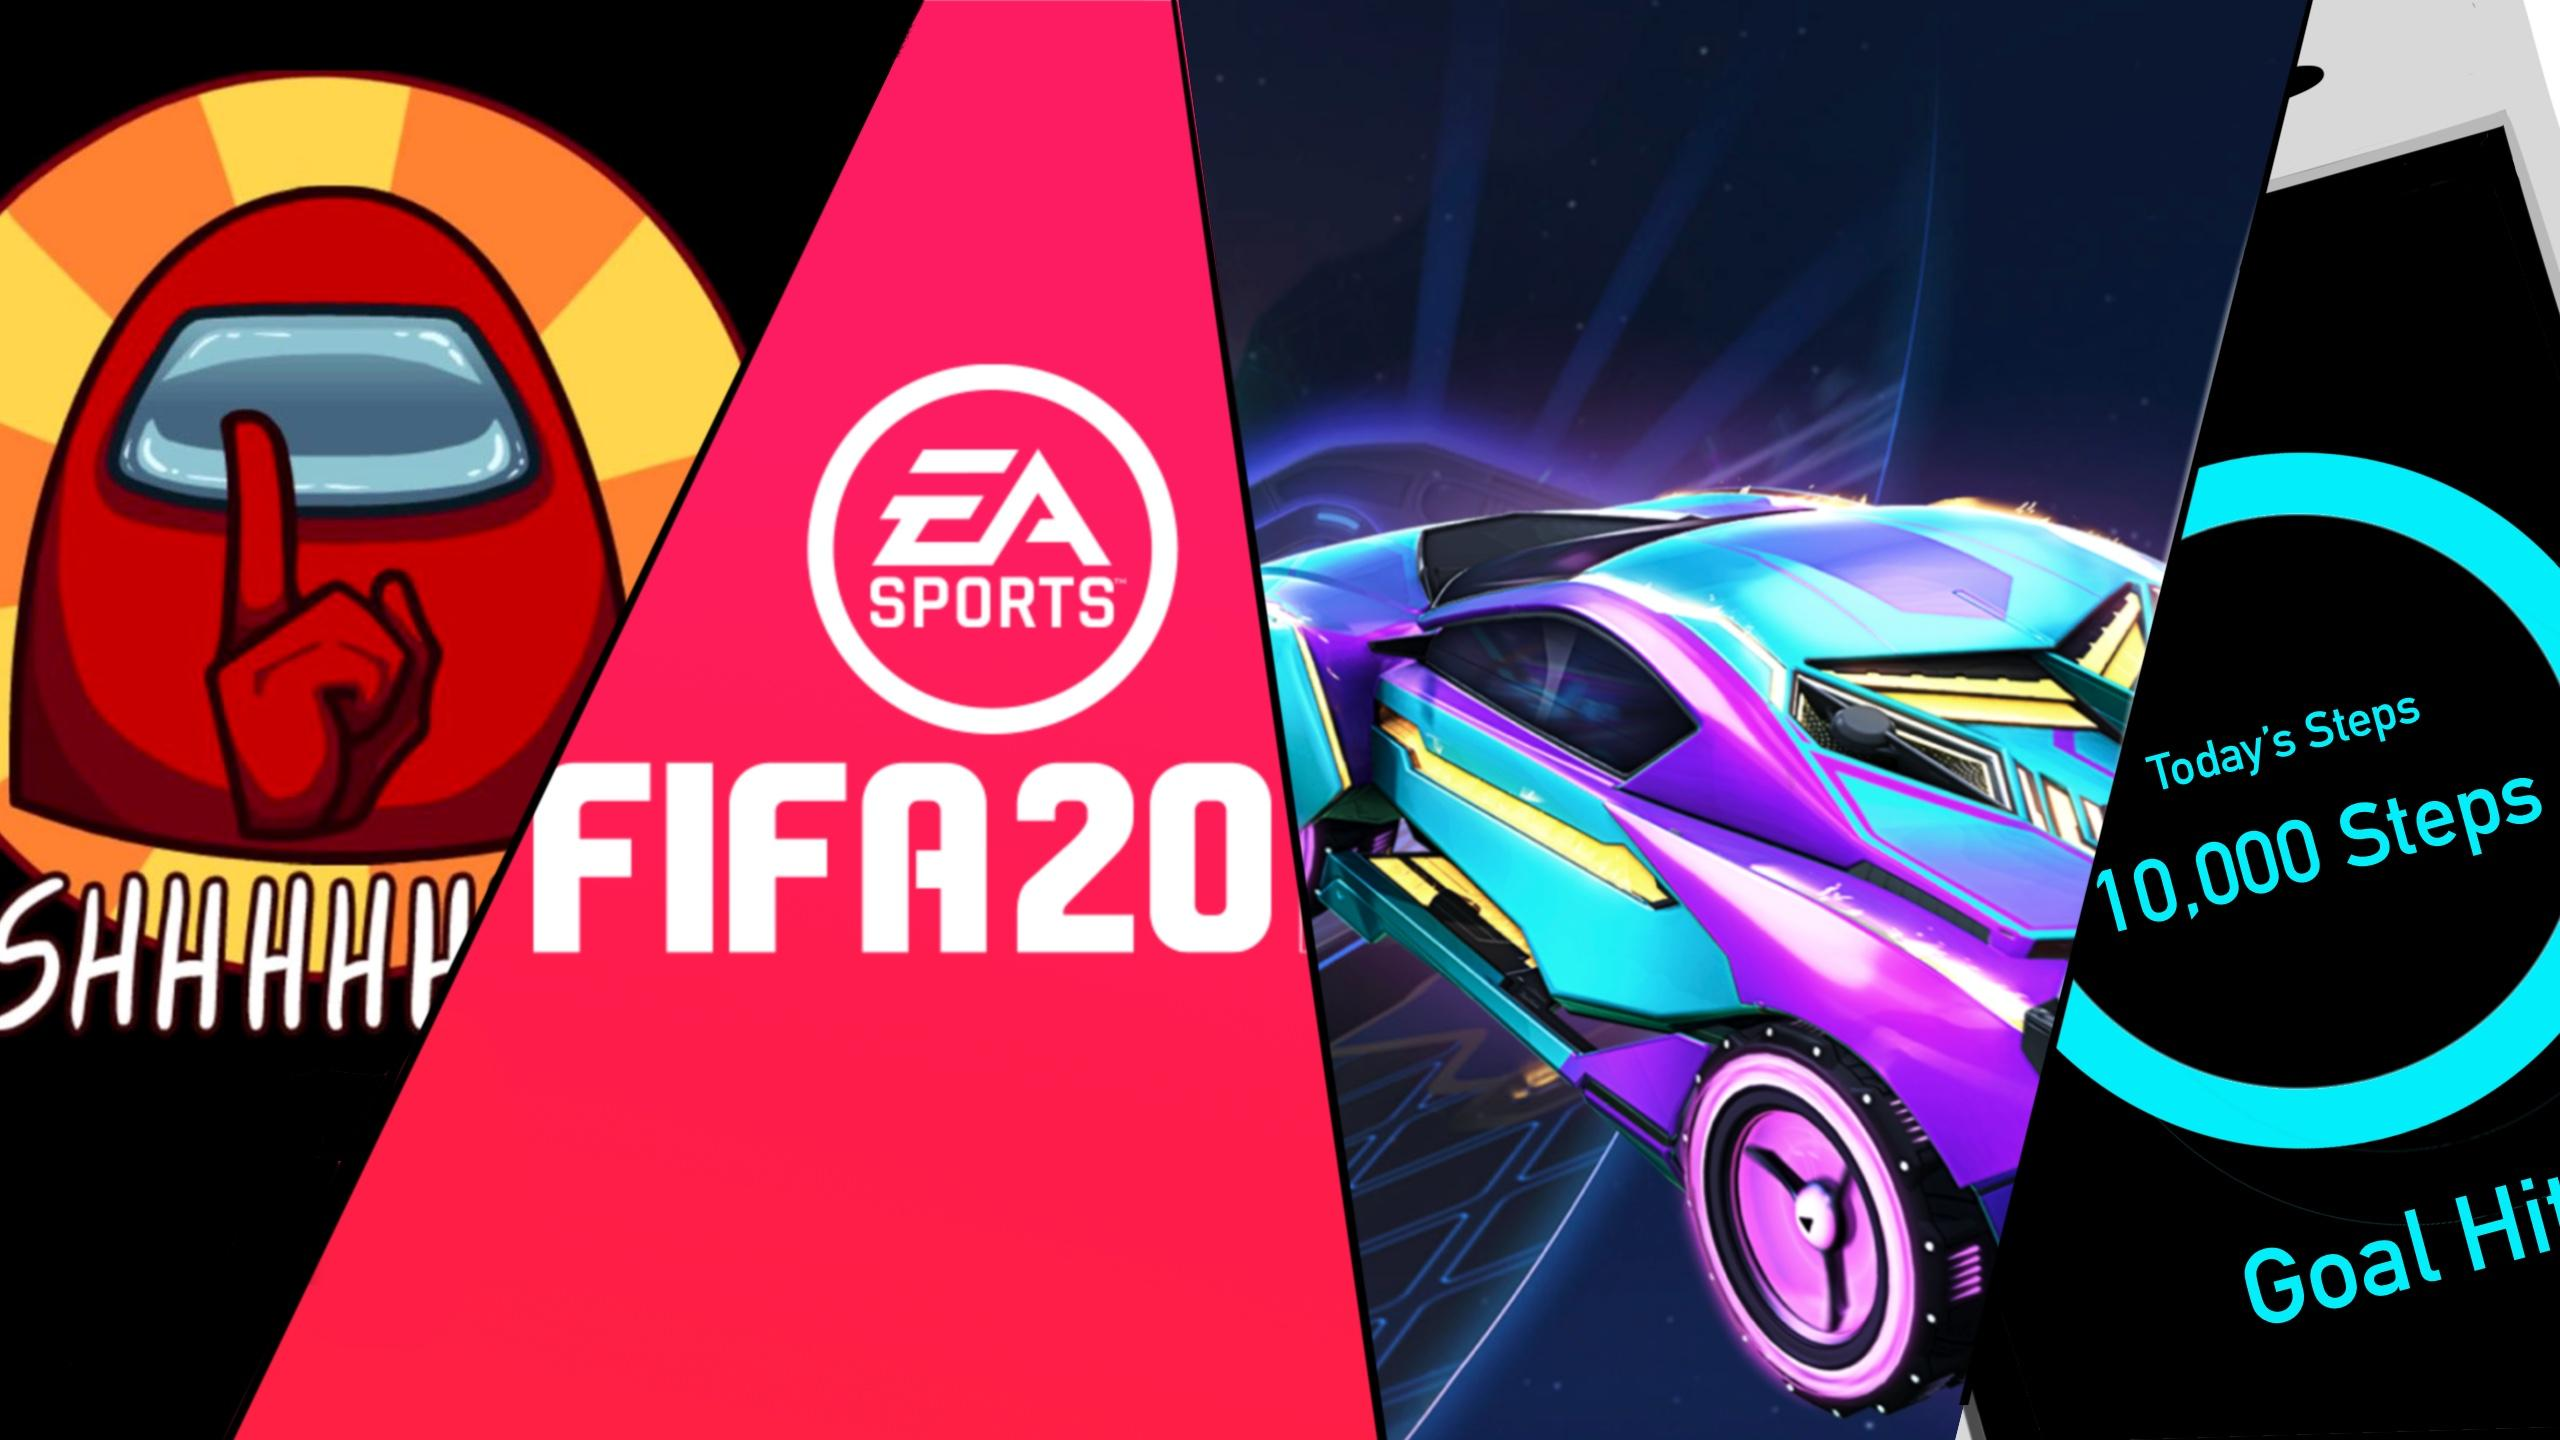 Photo of Among Us Screenshot, FIFA 20 Poster, Rocket League Official Art and screen displaying 10,000 steps.